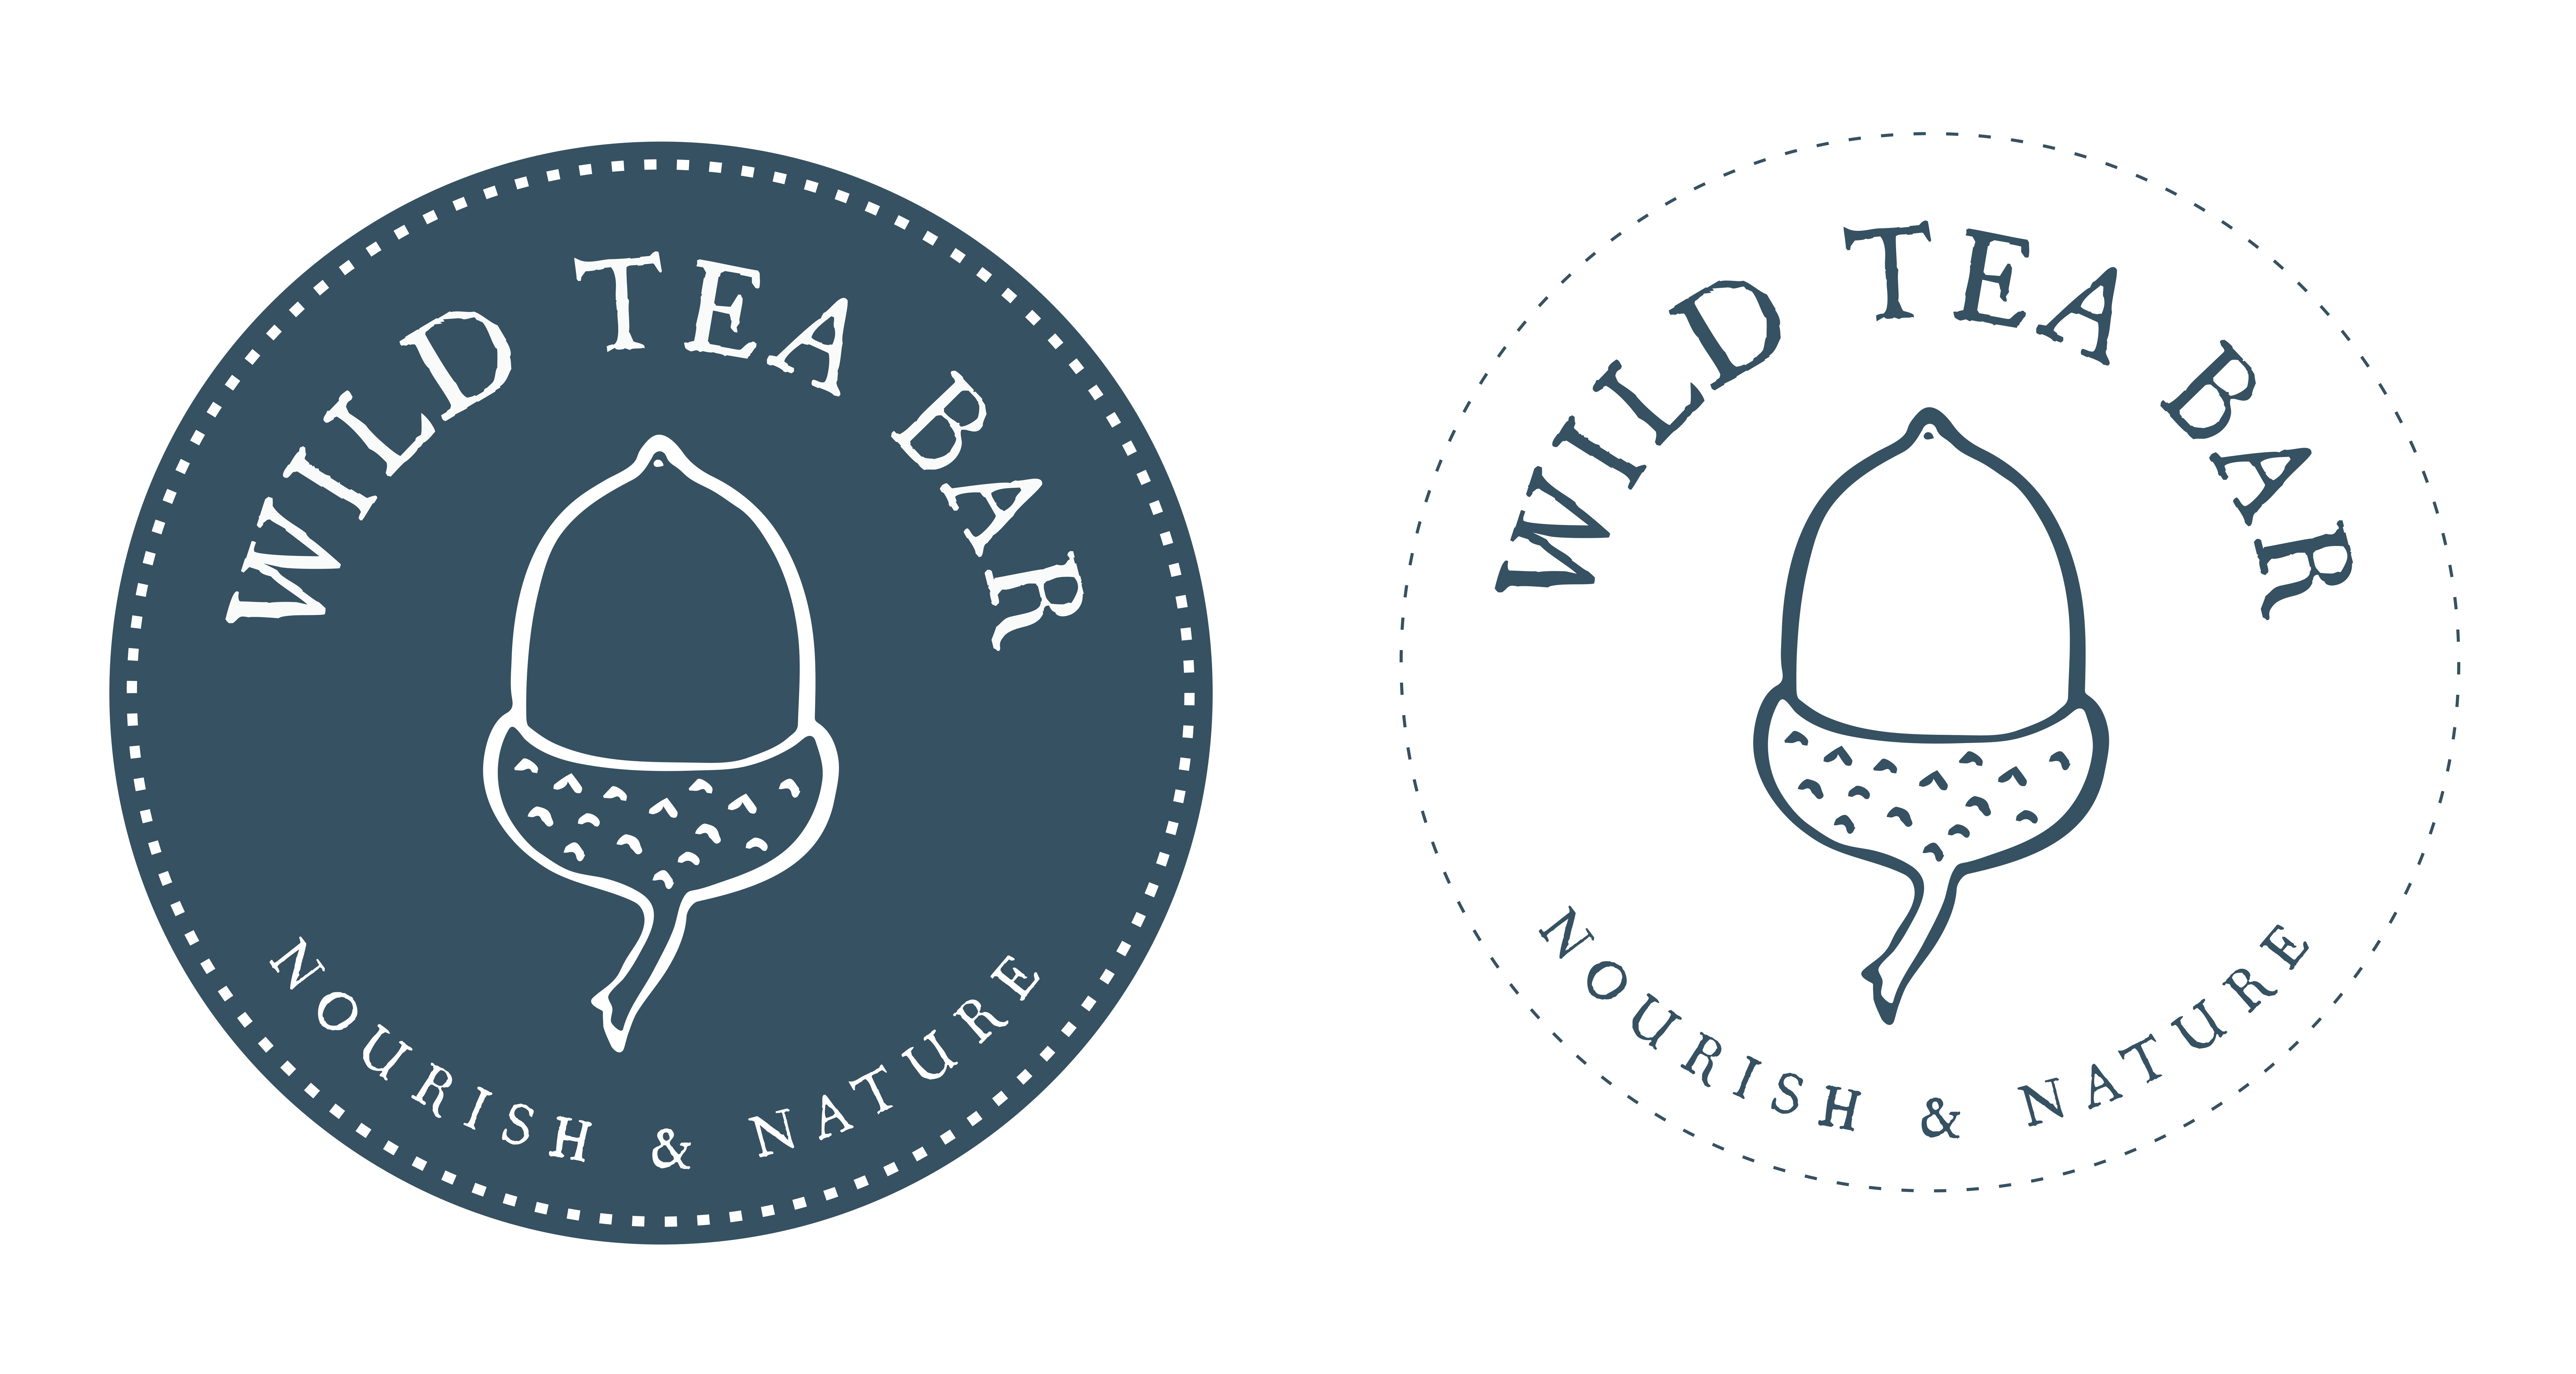 Clanfield Online welcomes The Wild Tea Bar